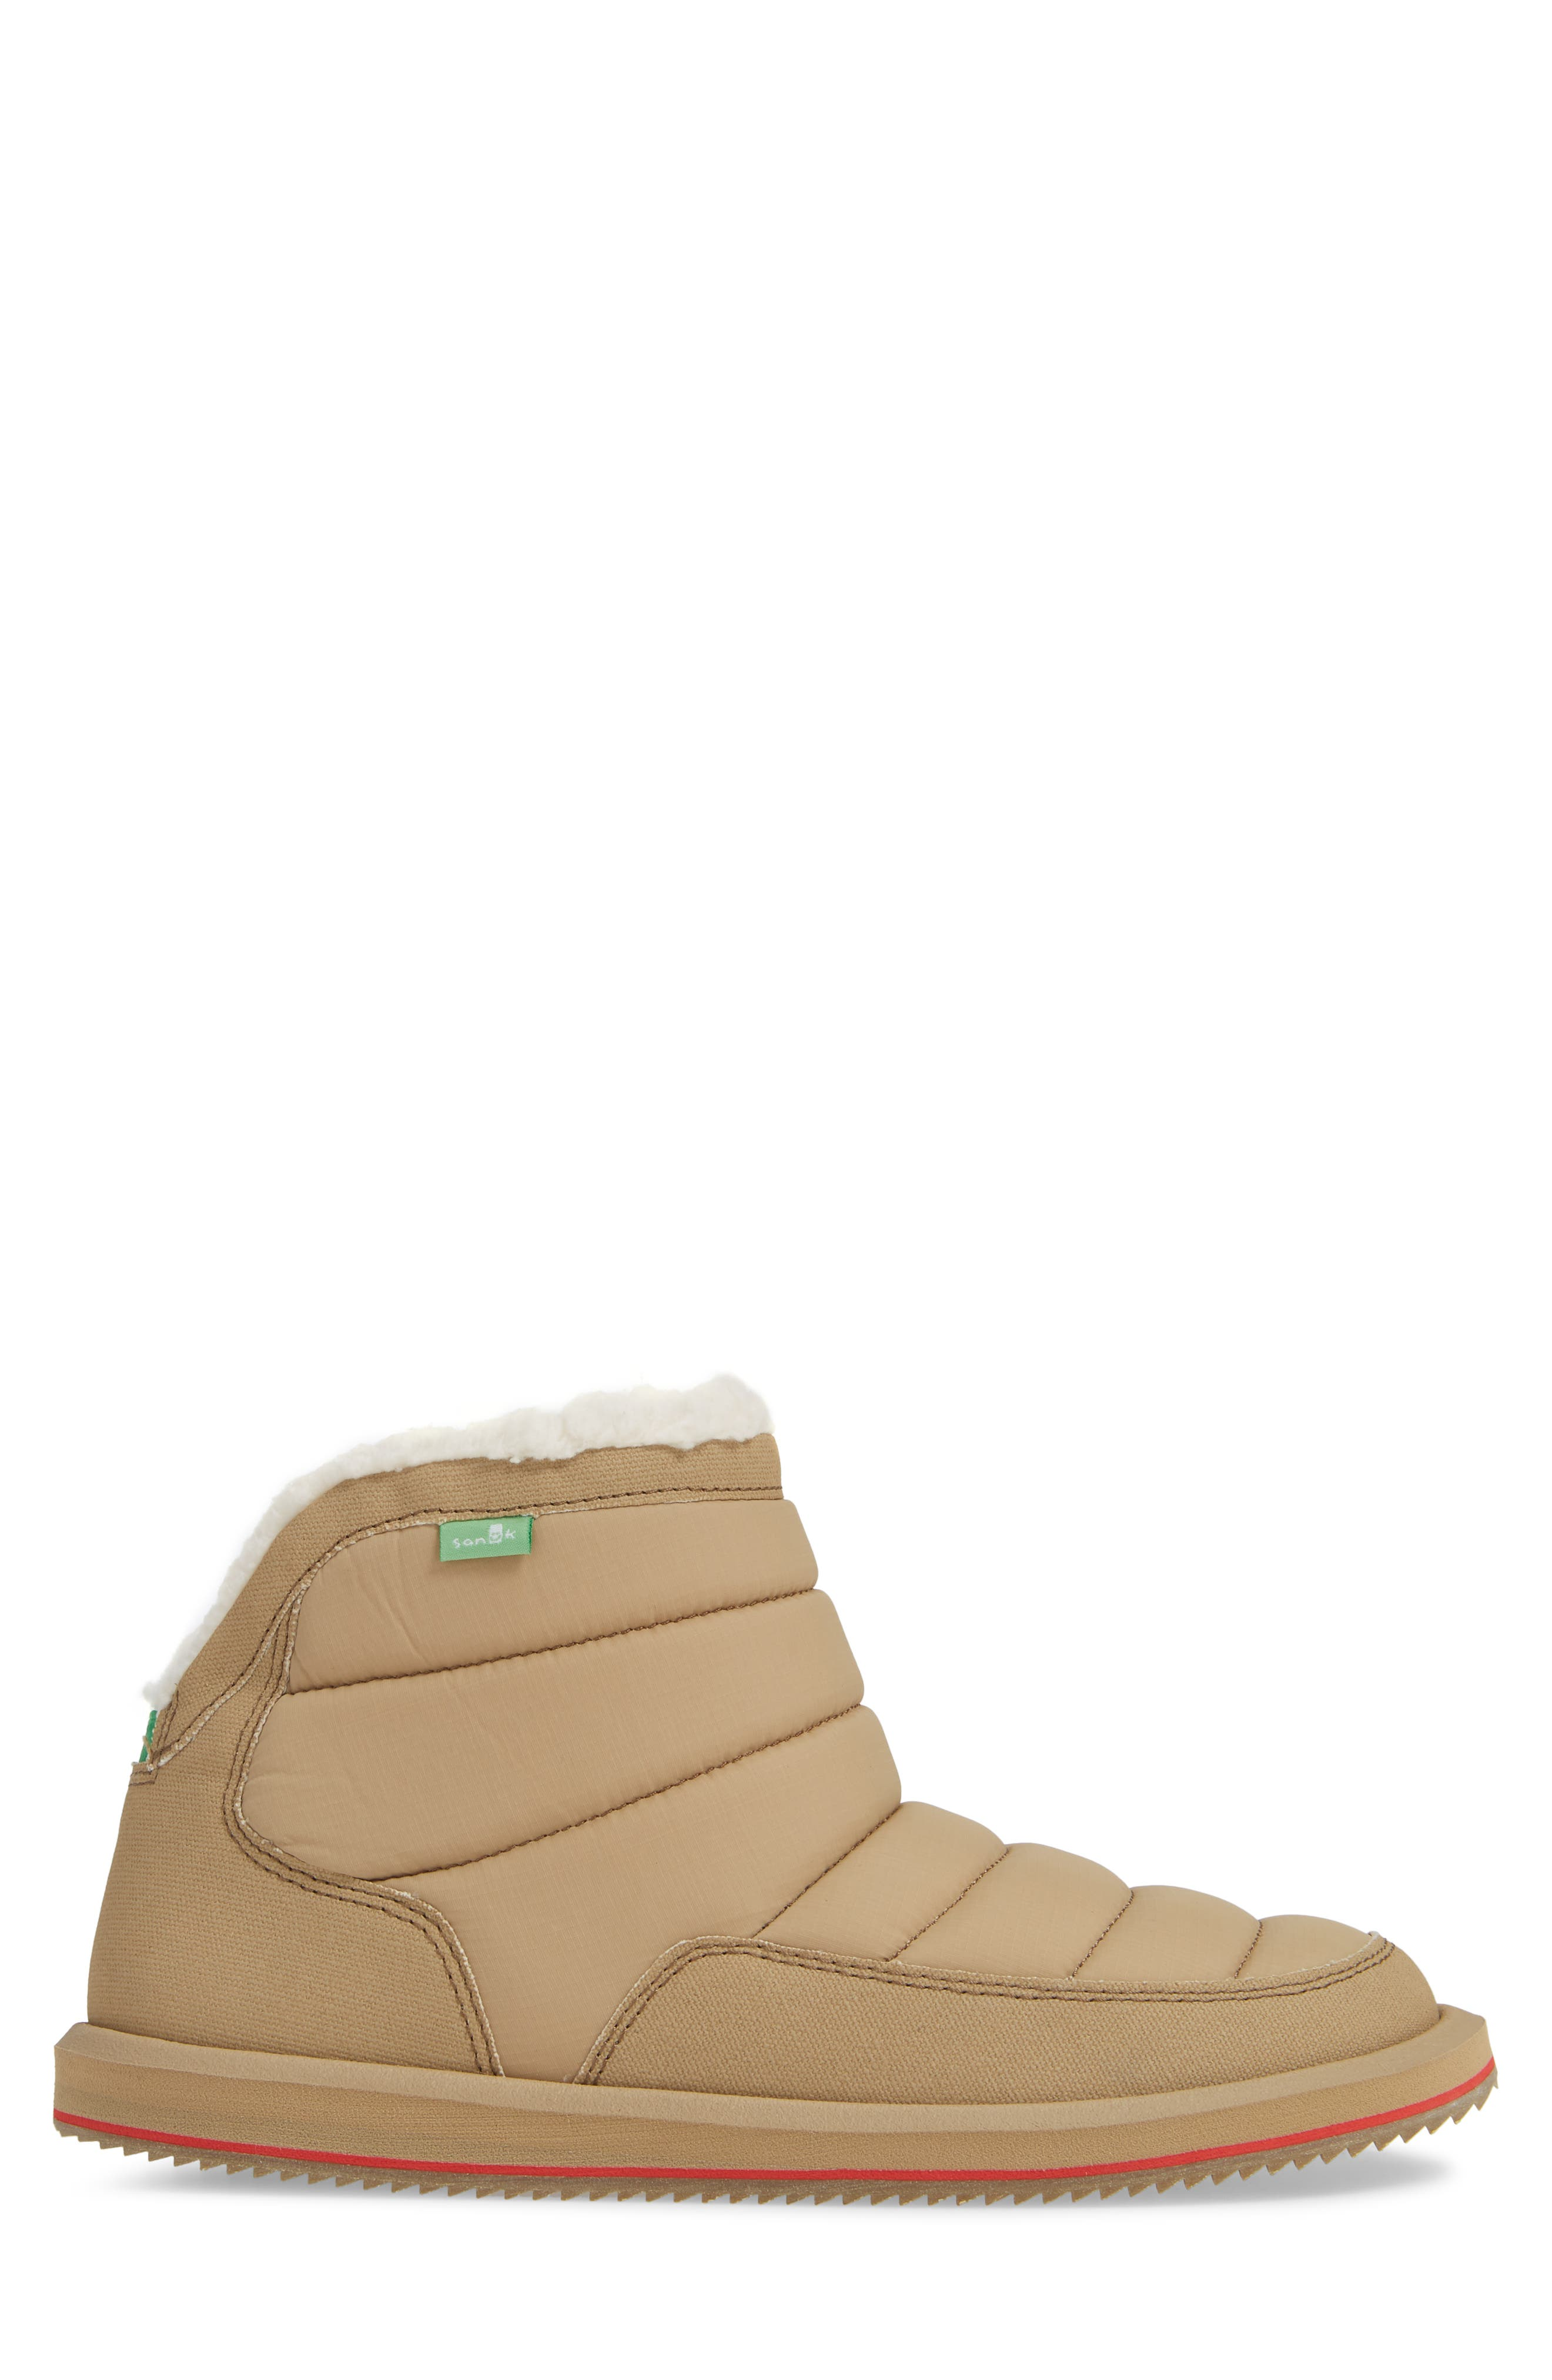 Puff & Chill Weather Boot,                             Alternate thumbnail 3, color,                             TAN